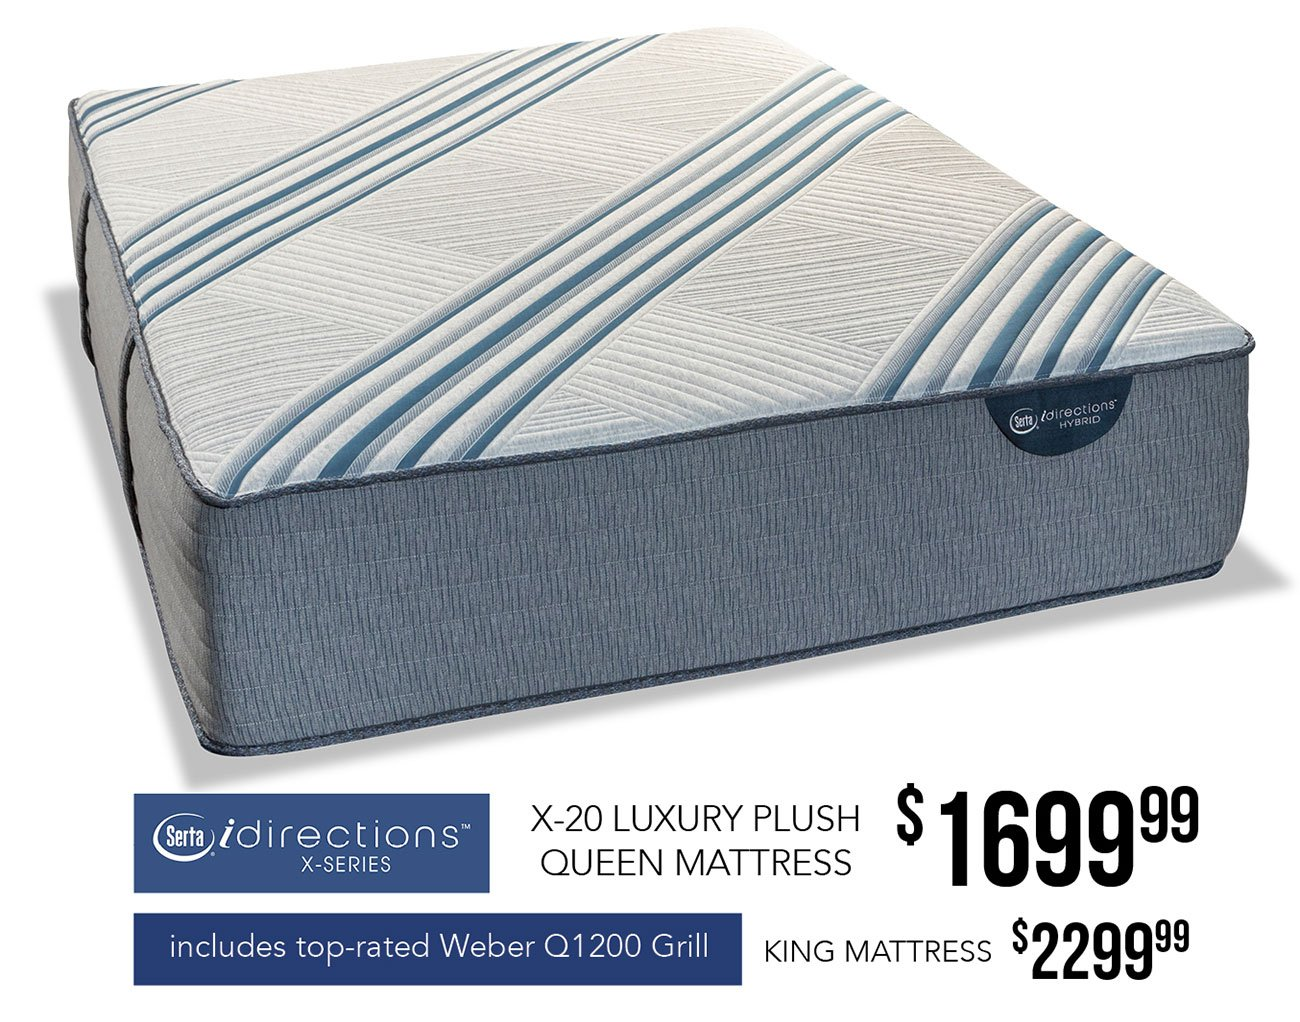 Serta-idirections-queen-mattress